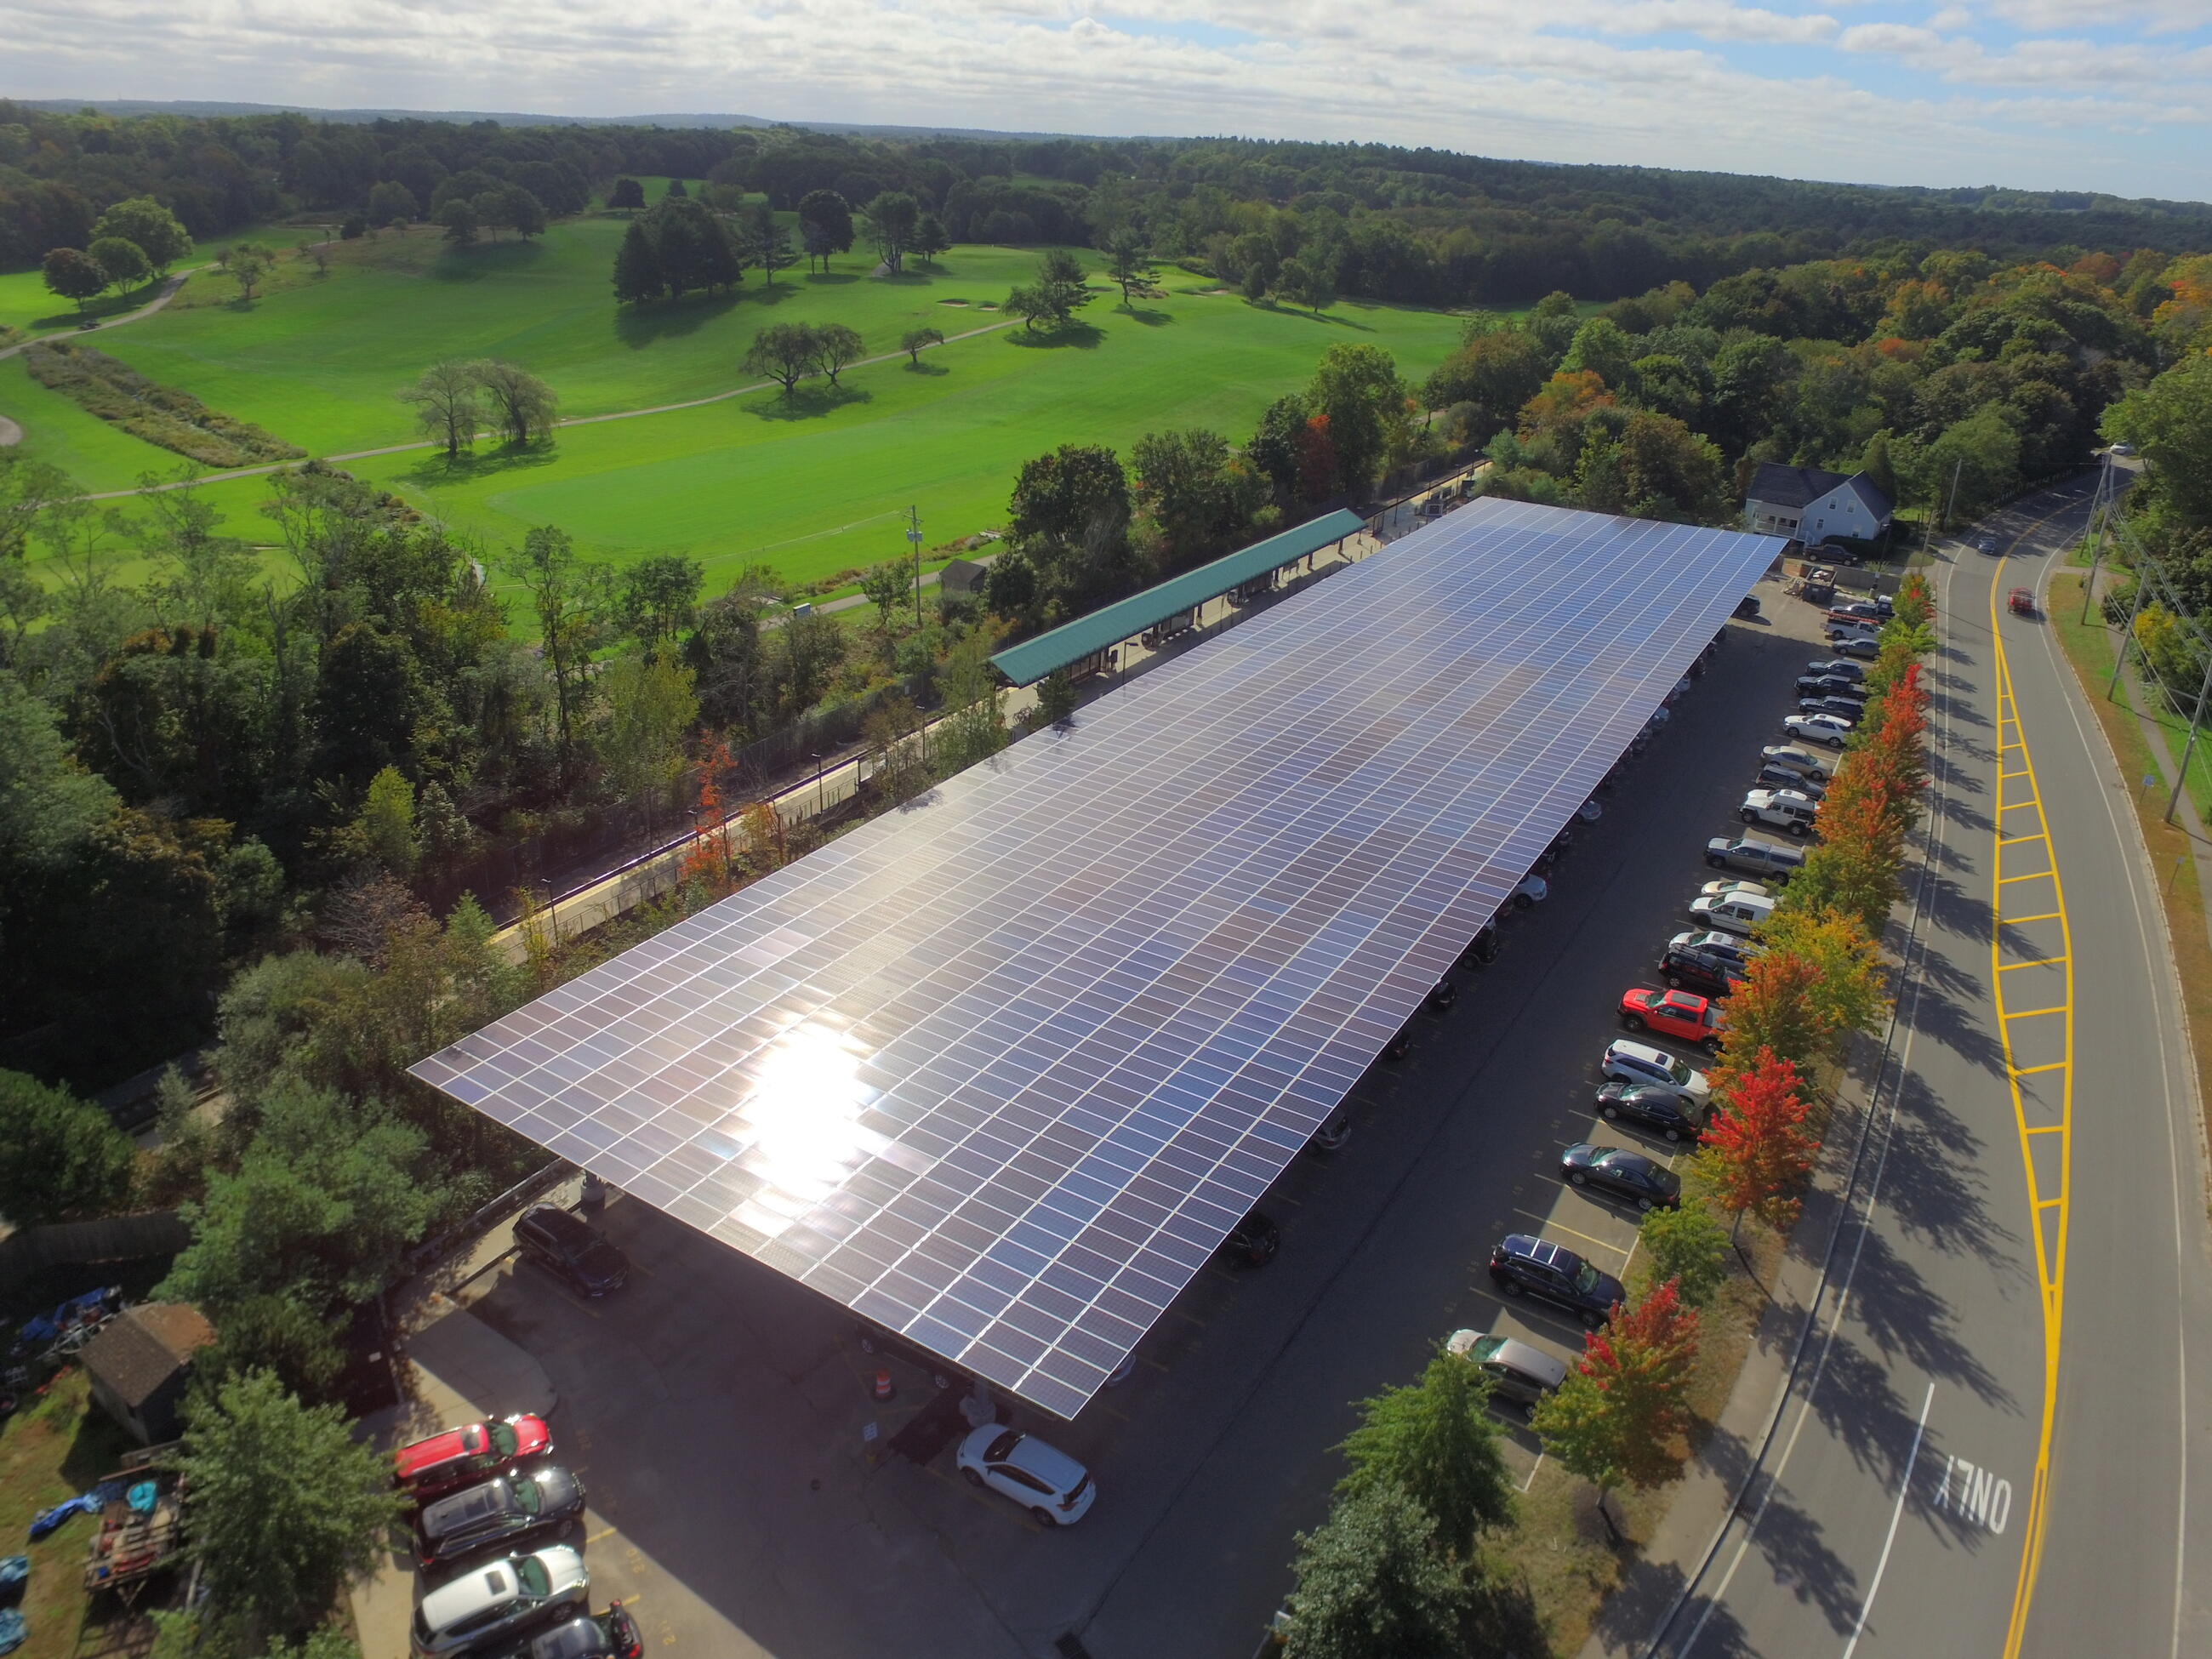 Aerial view of the T's solar canopy covering a parking lot in West Hingham.